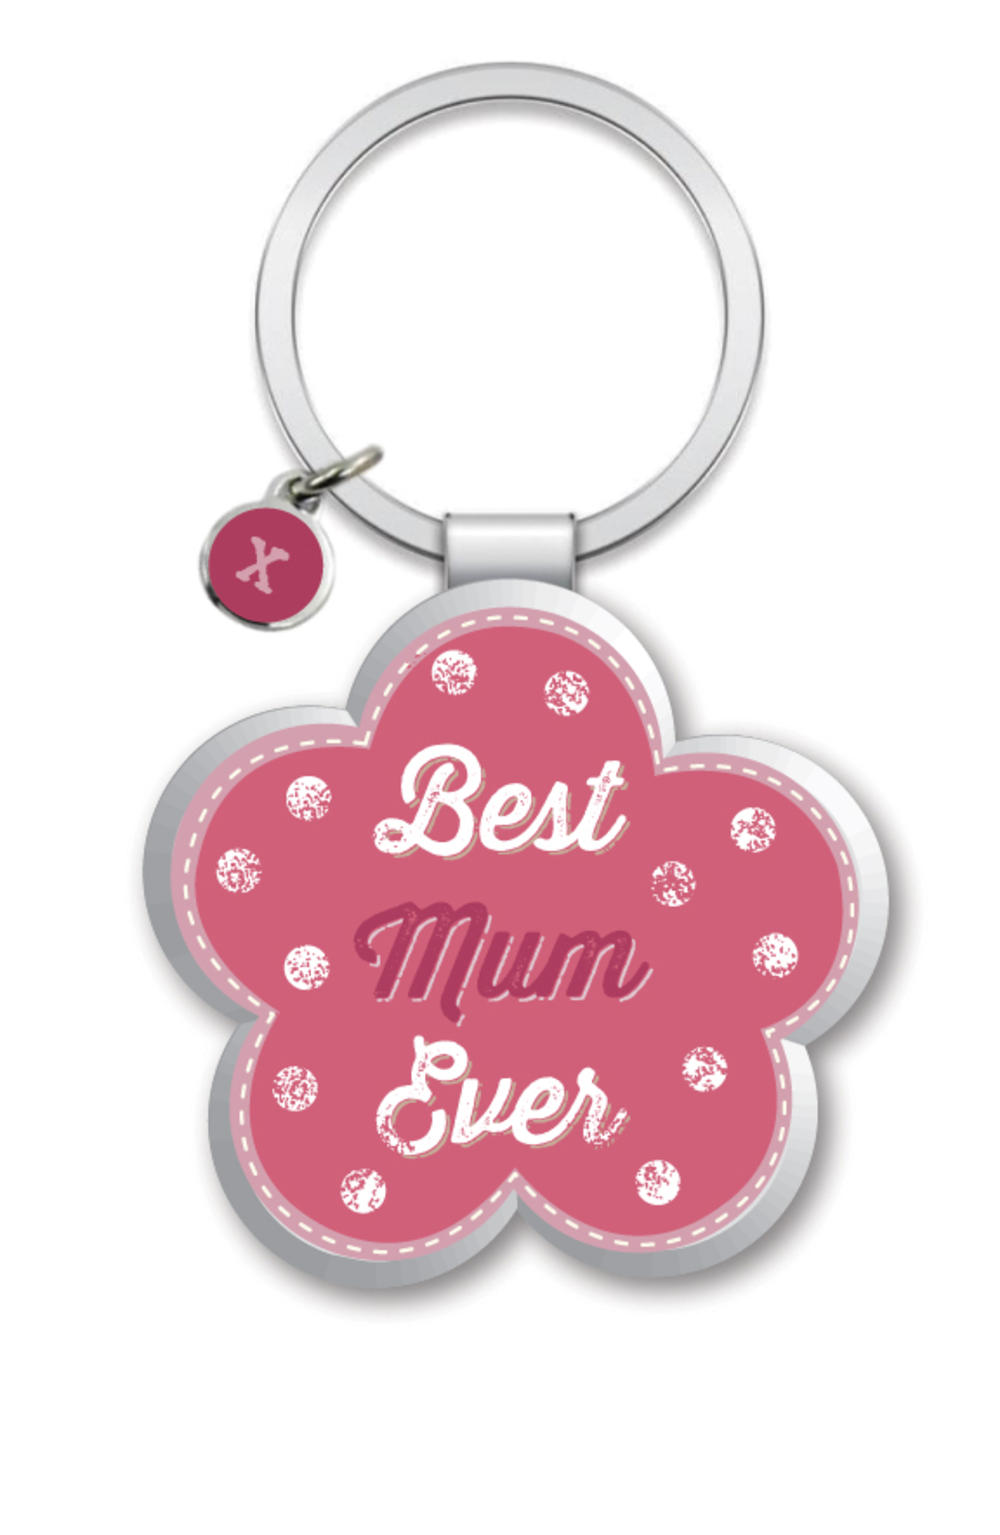 Best Mum Little Wishes Metallic Keyring